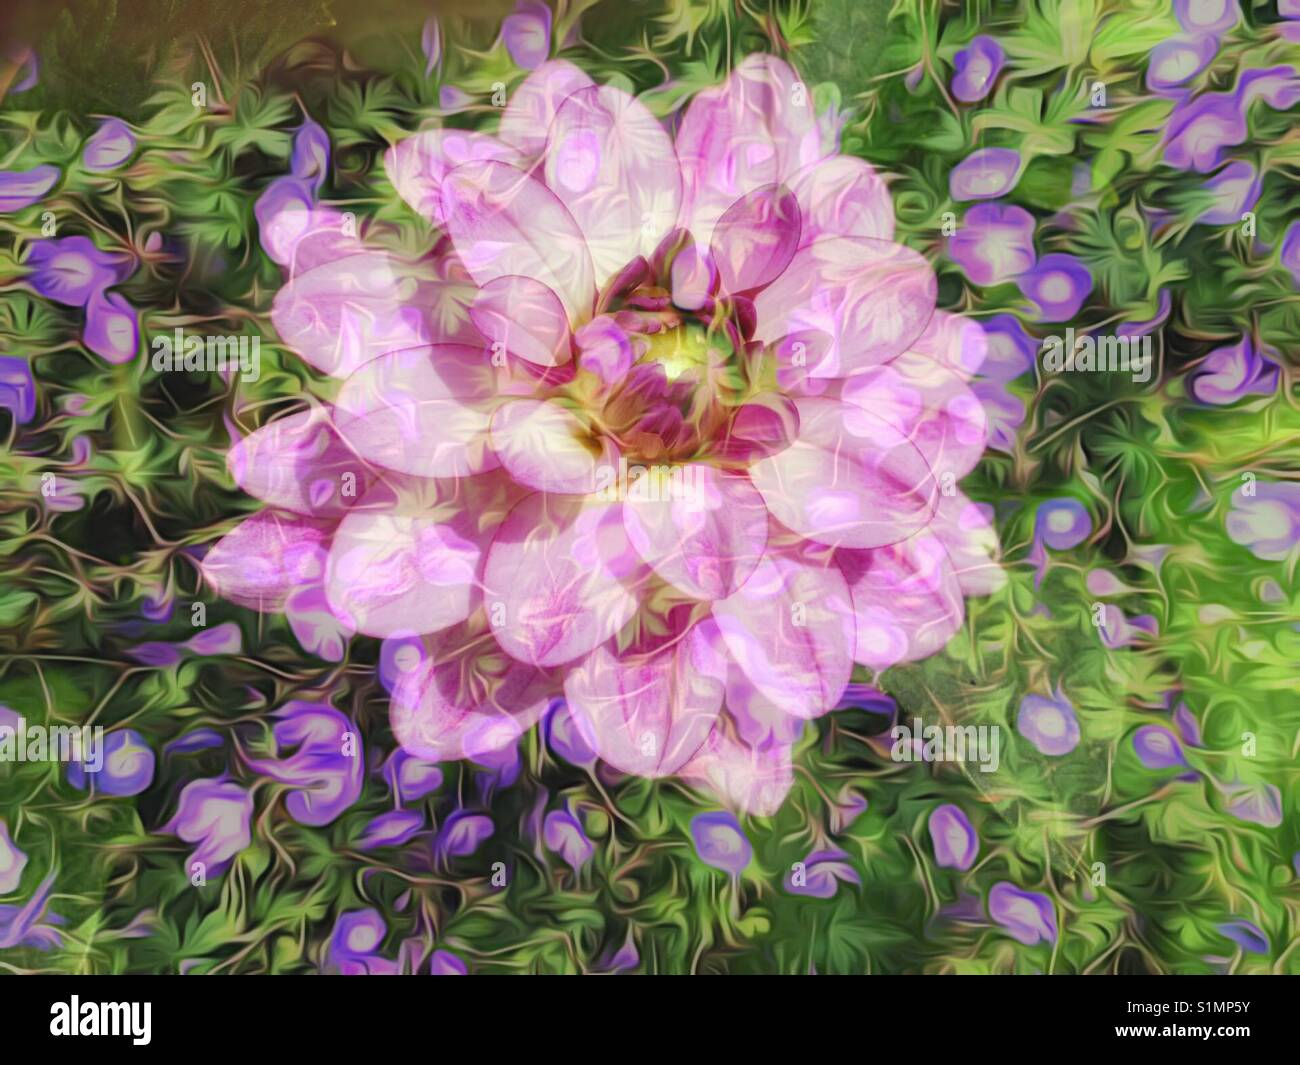 Blend of two floral images to create beautiful soft background - Stock Image